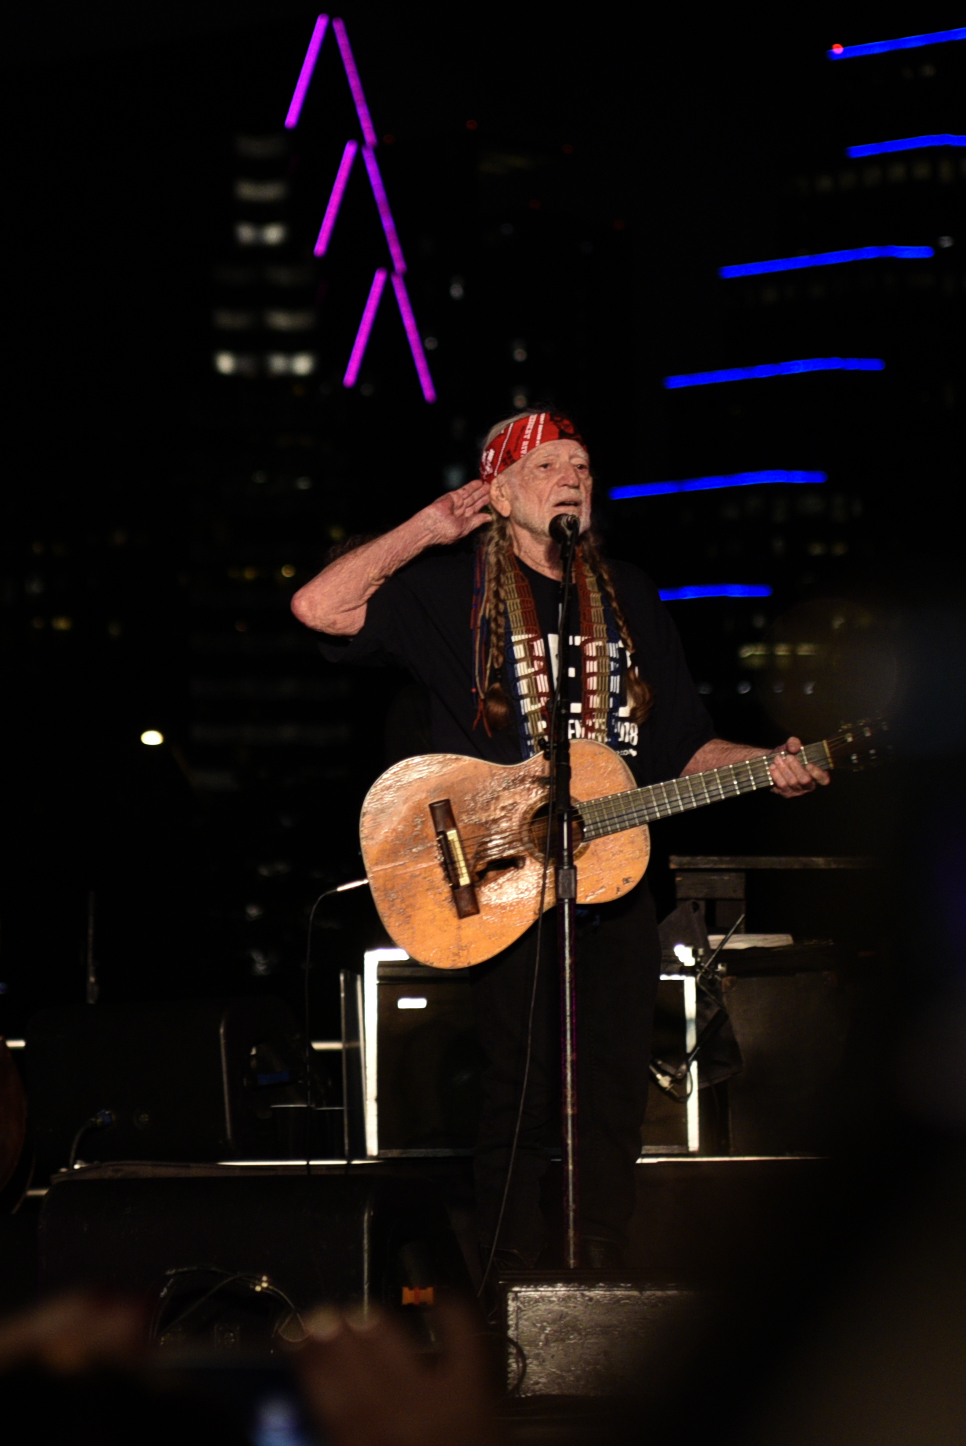 Willie Nelson opens his set with Whiskey River.